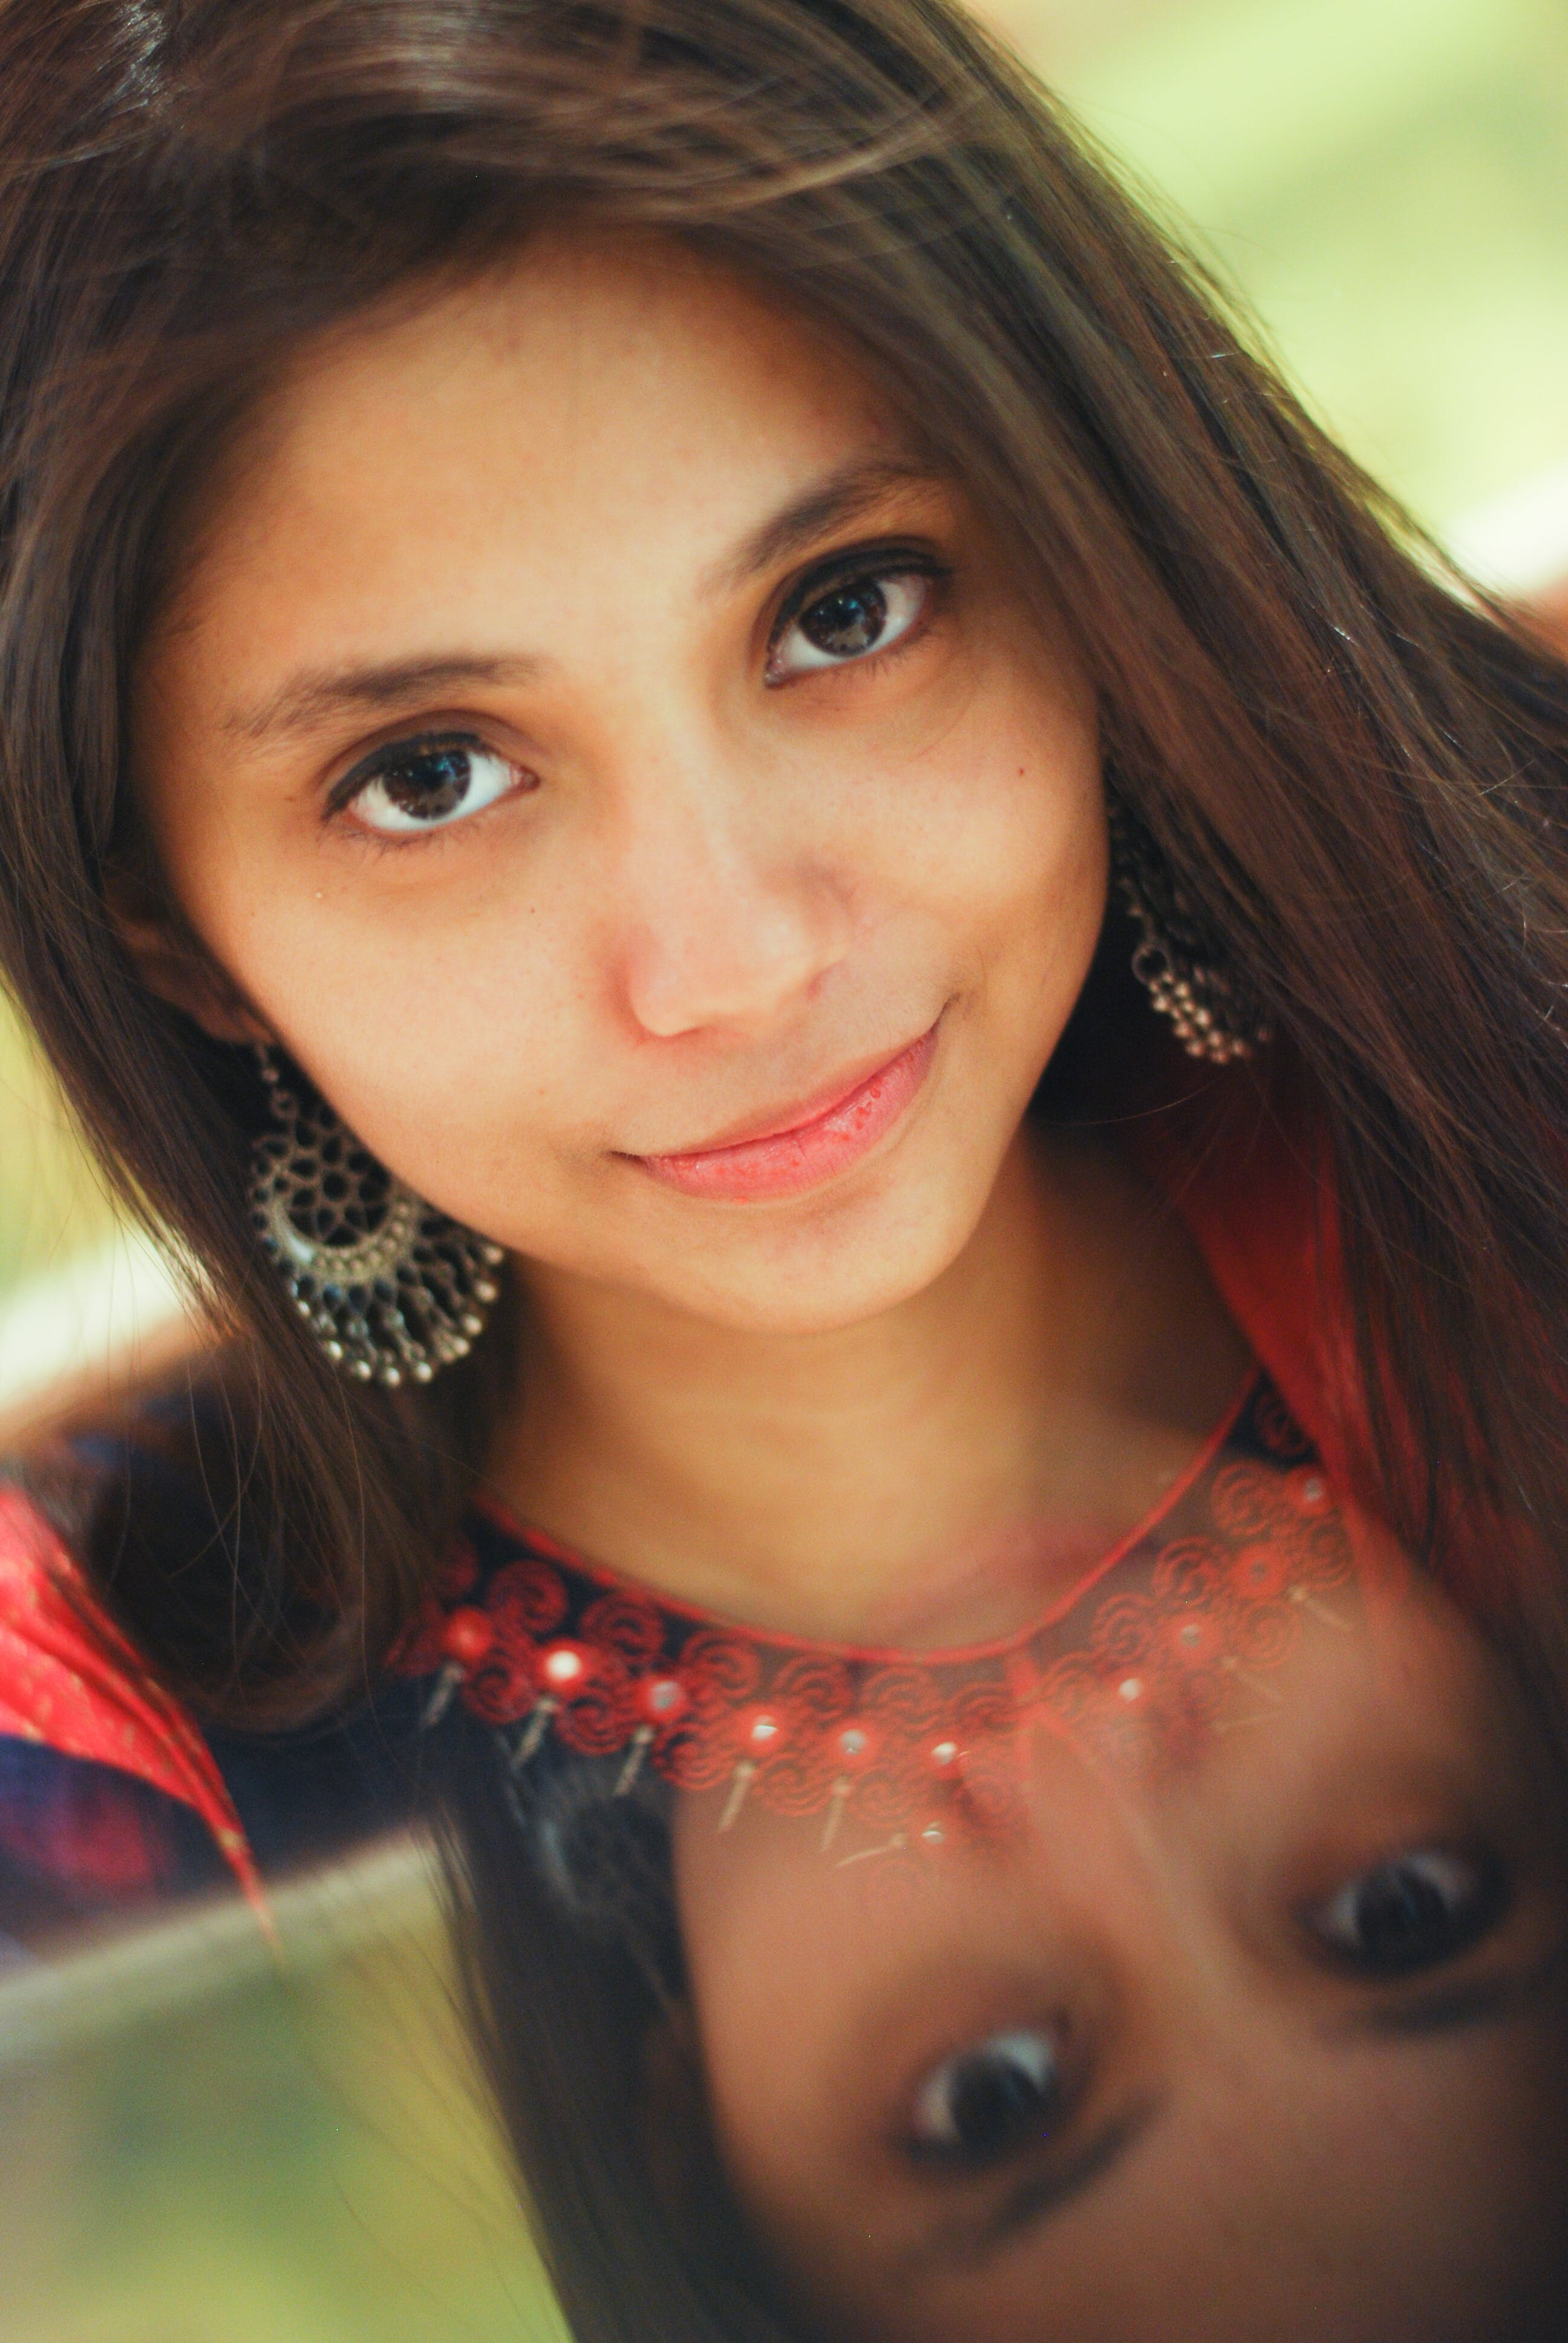 Free stock photo of beautiful eyes, indian girl, reflection, traditional wear